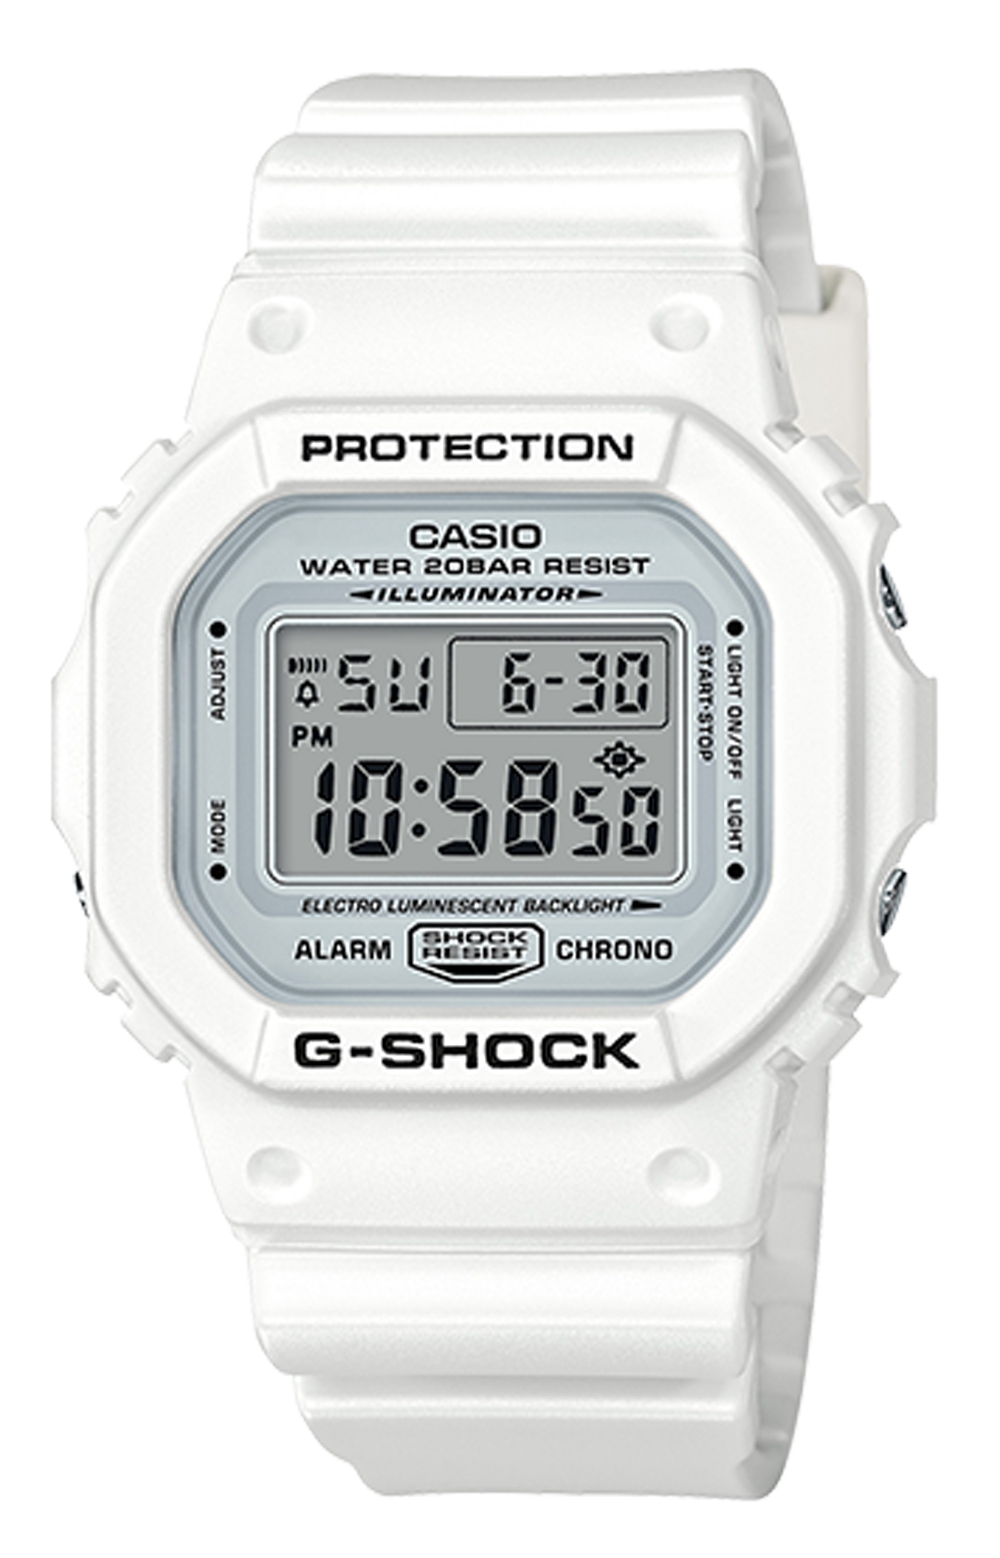 DW5600MW-7 Watch - White